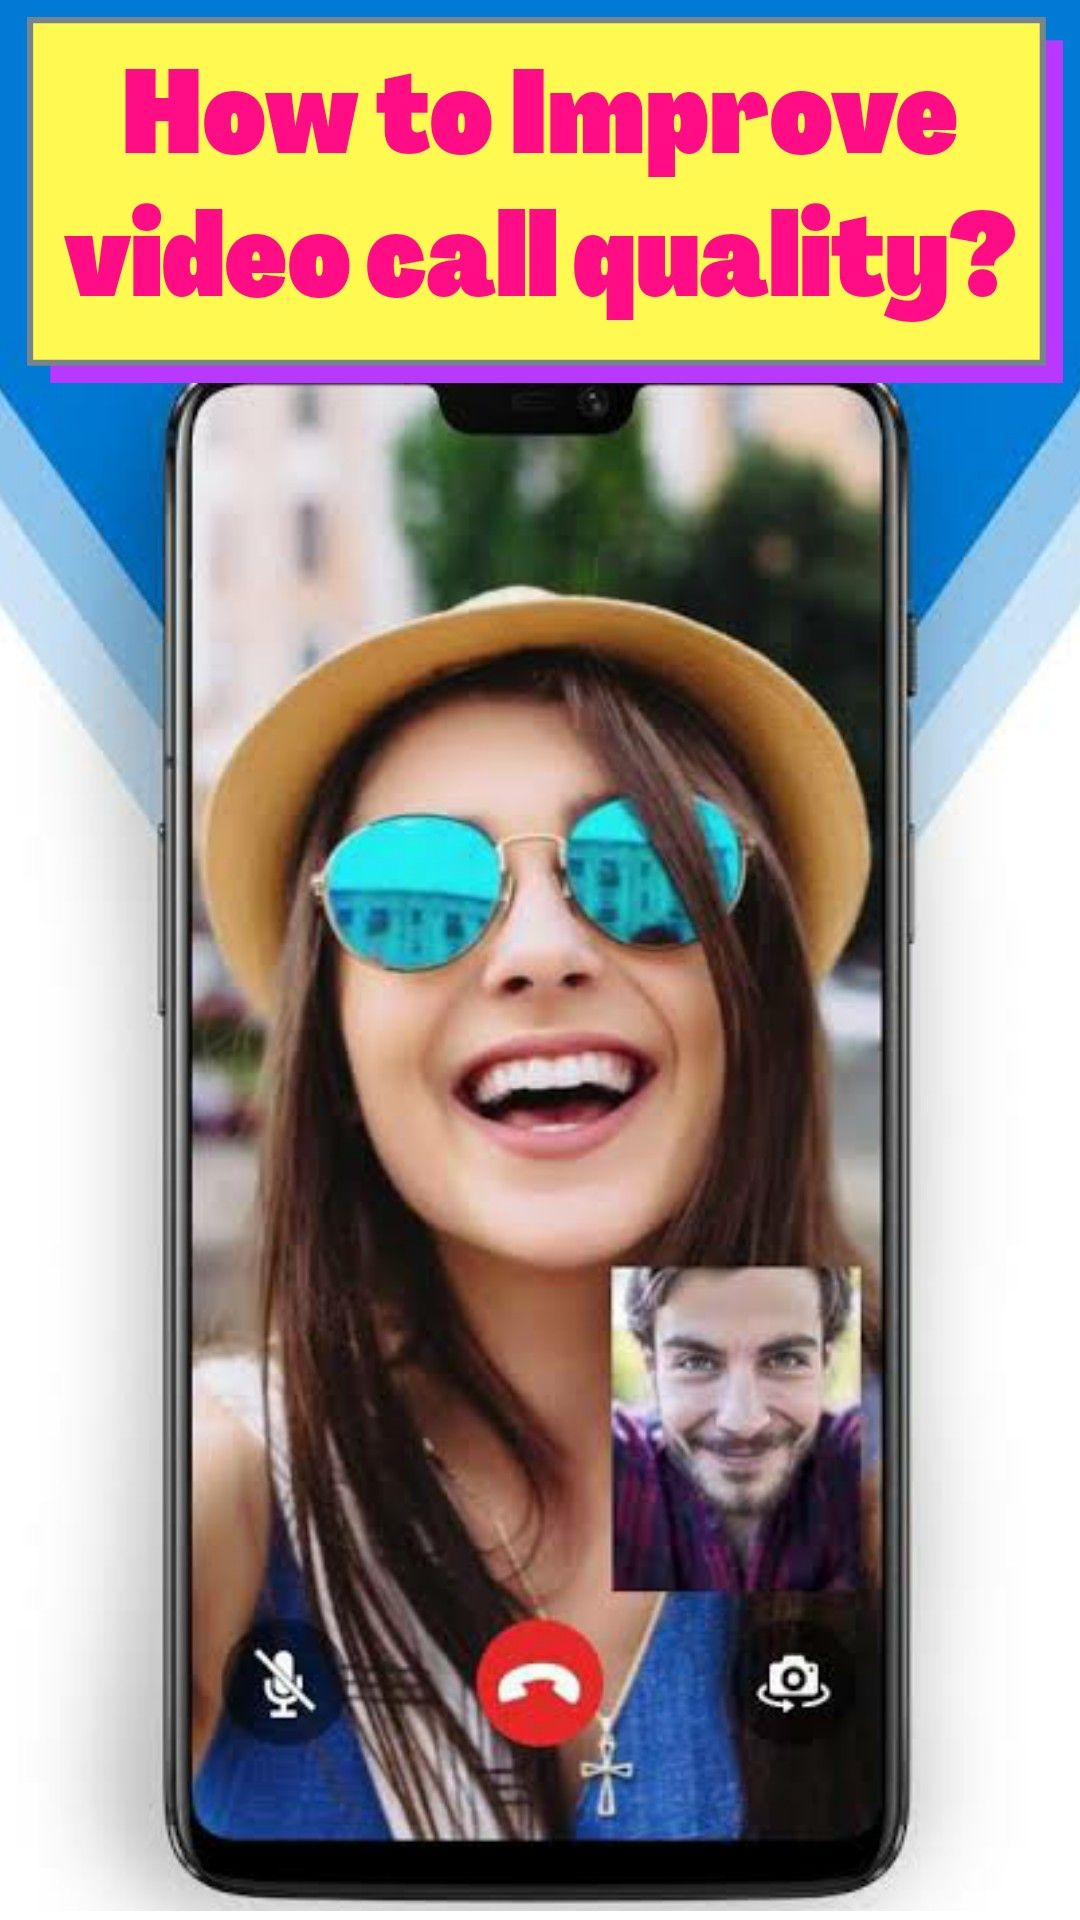 How to improve video call quality in 2020 video